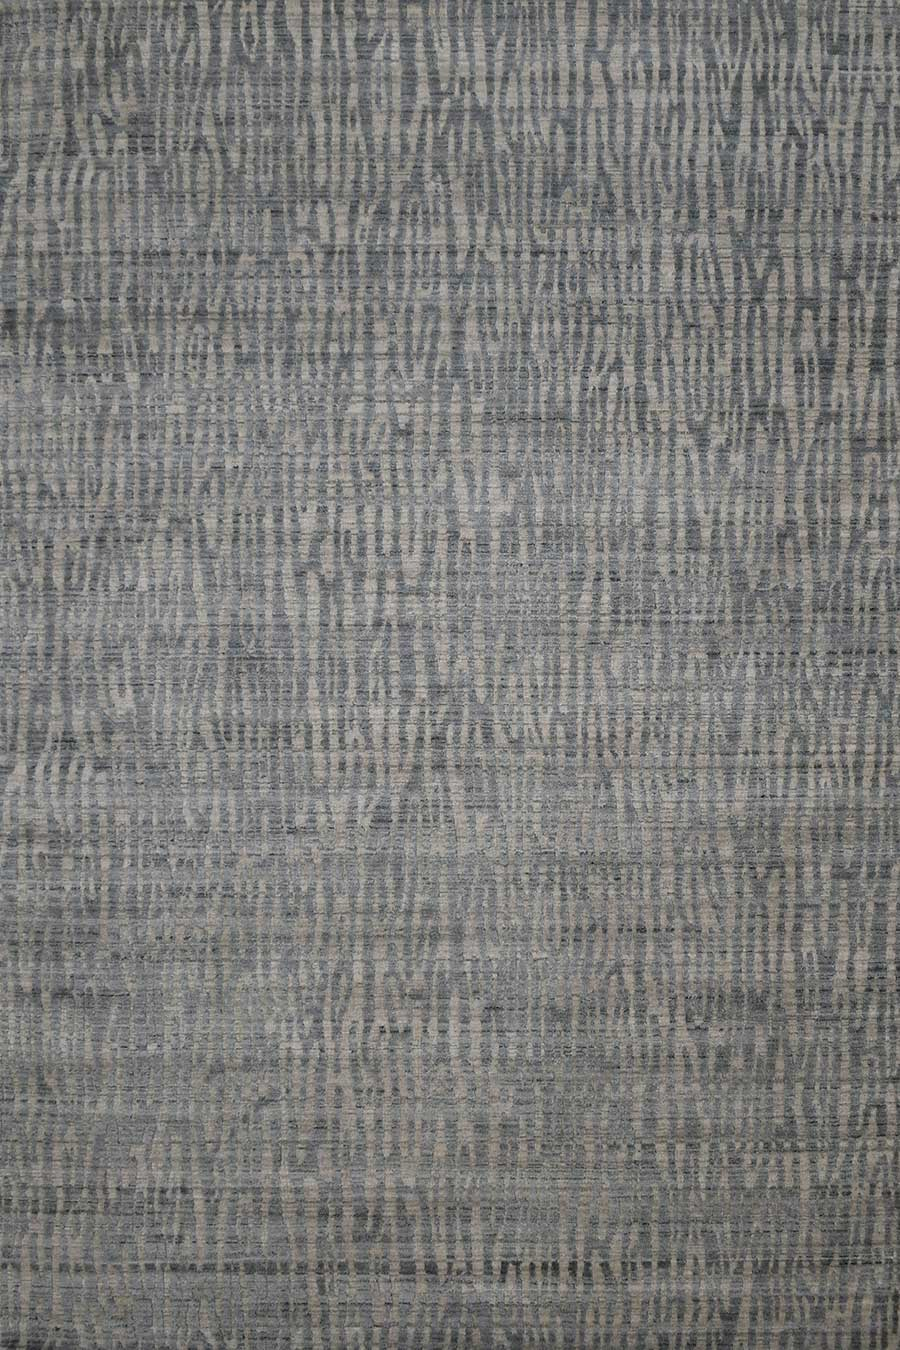 Overhead image of animal Webster rug in grey colour